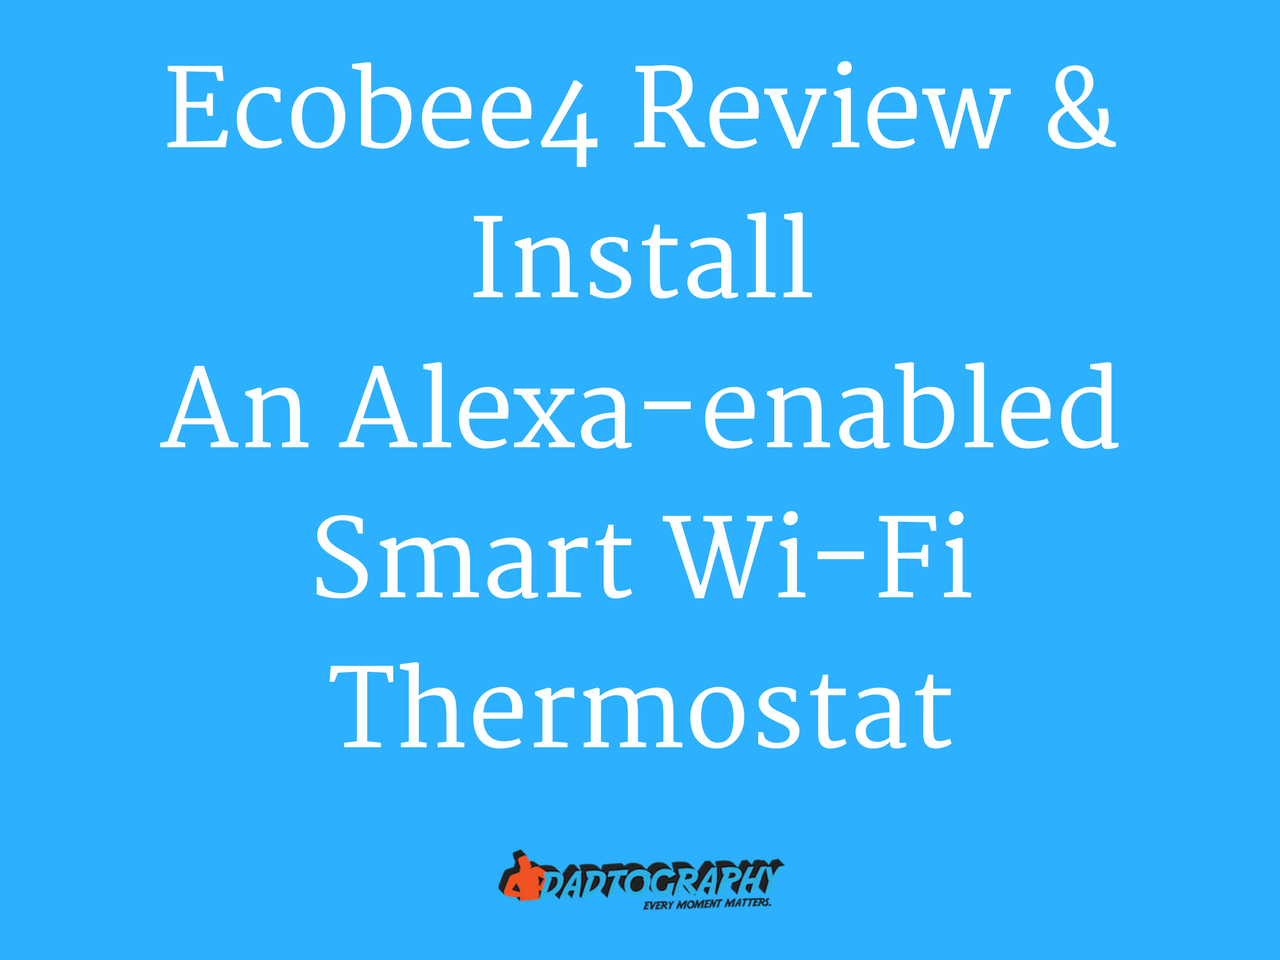 Ecobee4 Review & Install - An Alexa-enabled Smart Wi-Fi Thermostat